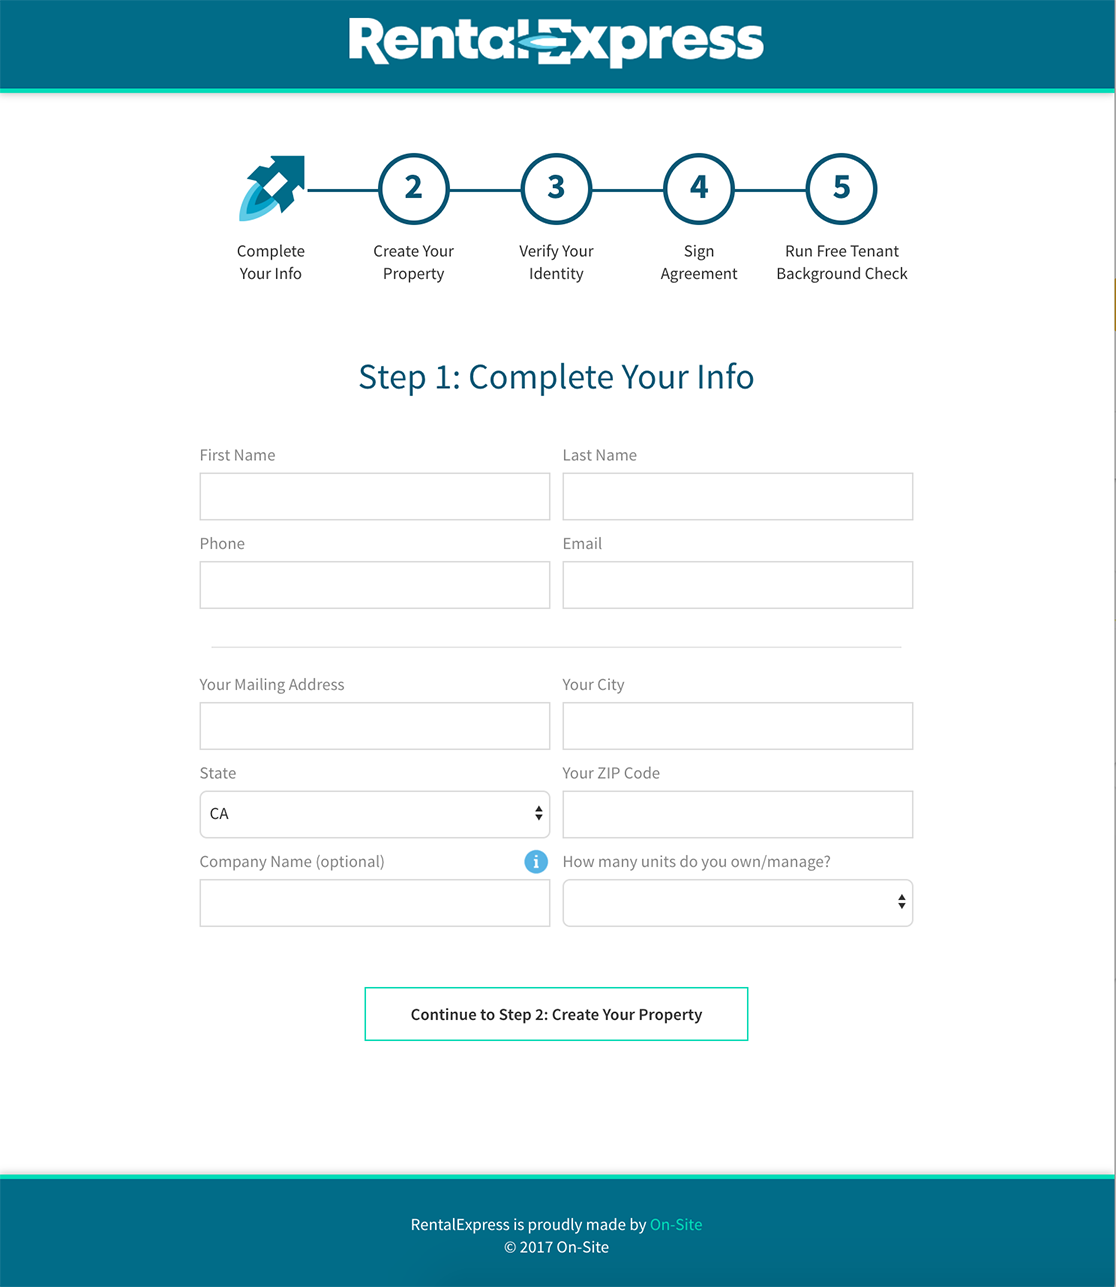 The first page of the registration workflow.